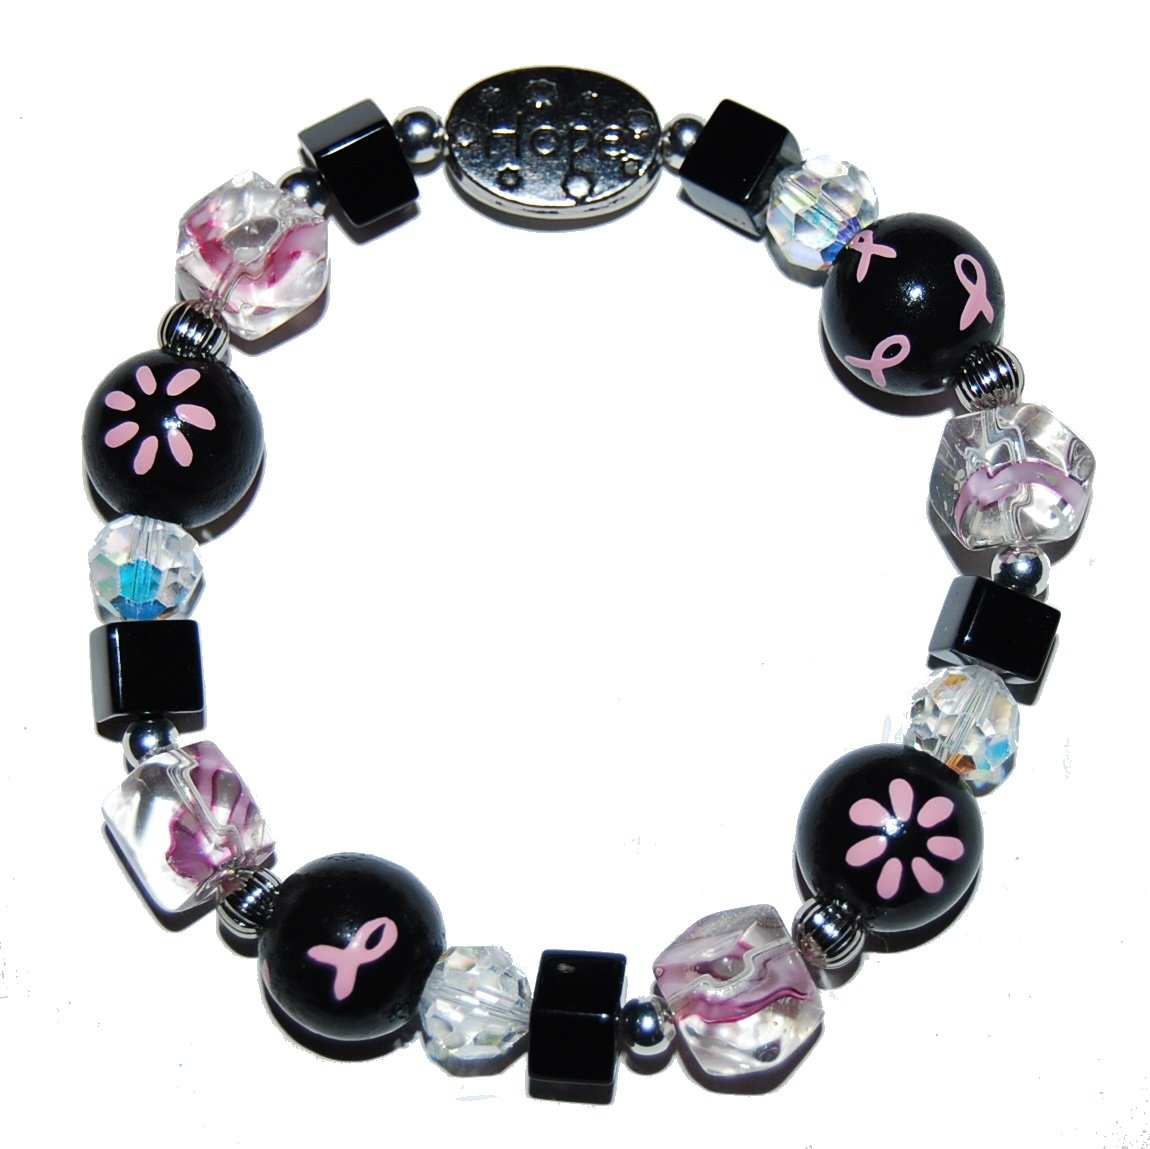 Hand-painted Pink & Black Ribbon Breast Cancer Awareness Stretch Bracelet